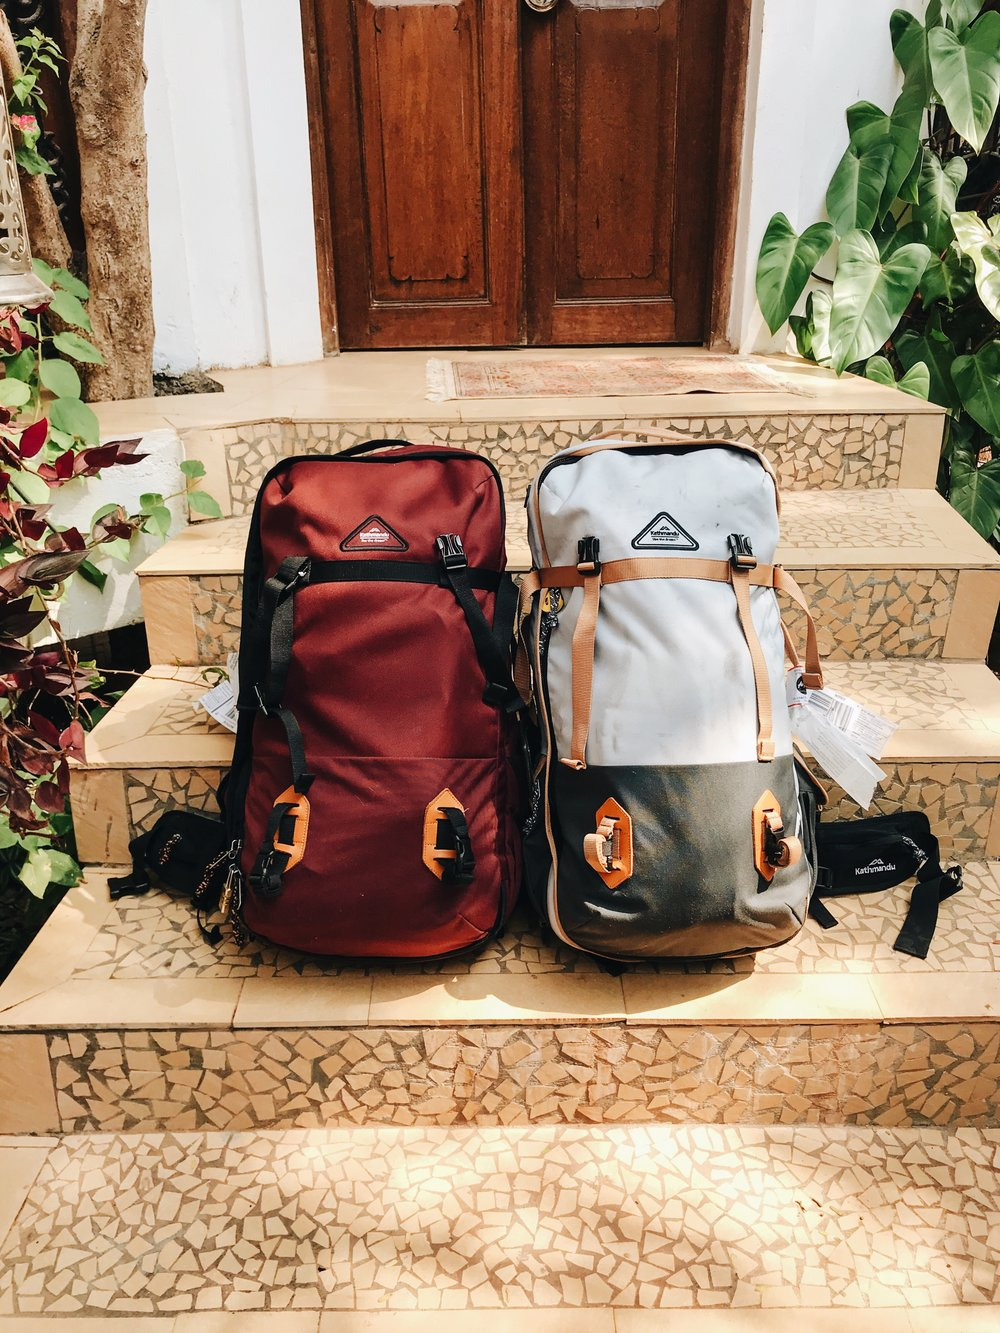 4. Our fantastic backpacks - carrying our lives with us everywhere!